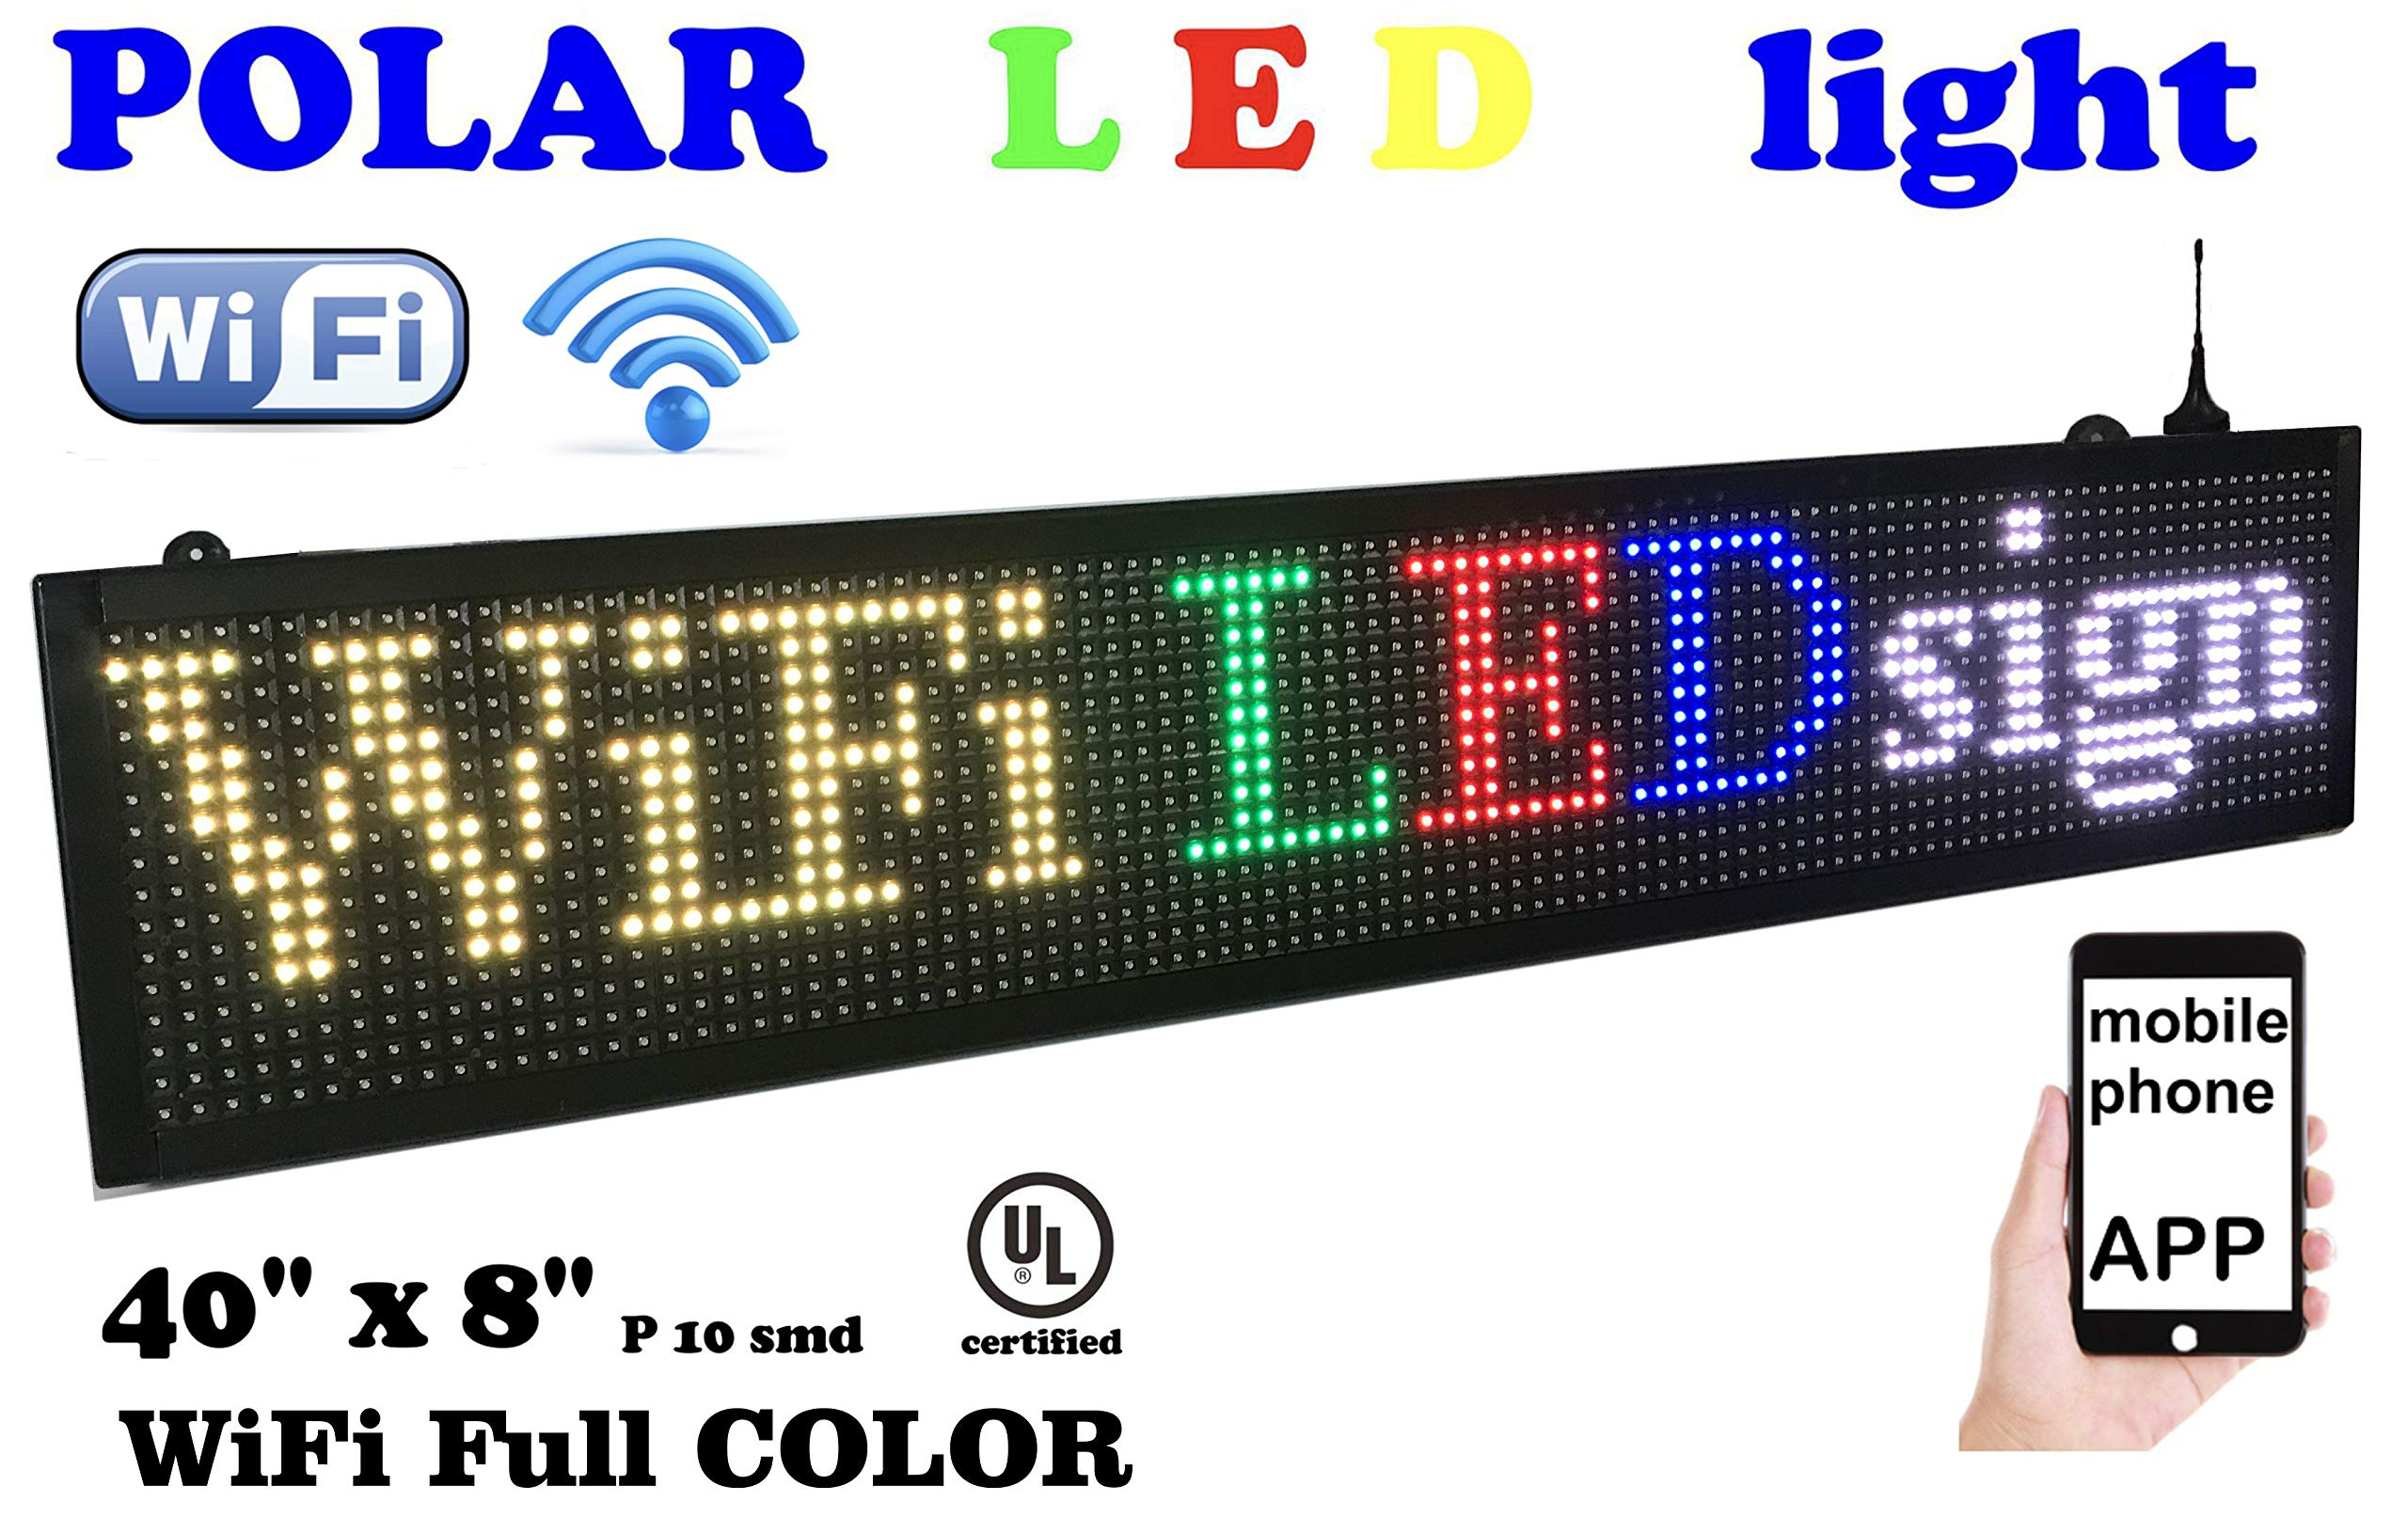 WiFi LED Sign, 7 Color Sign 40'' x 8'' with high Resolution P10 and New SMD Technology. Perfect Solution for Advertising by POLAR light